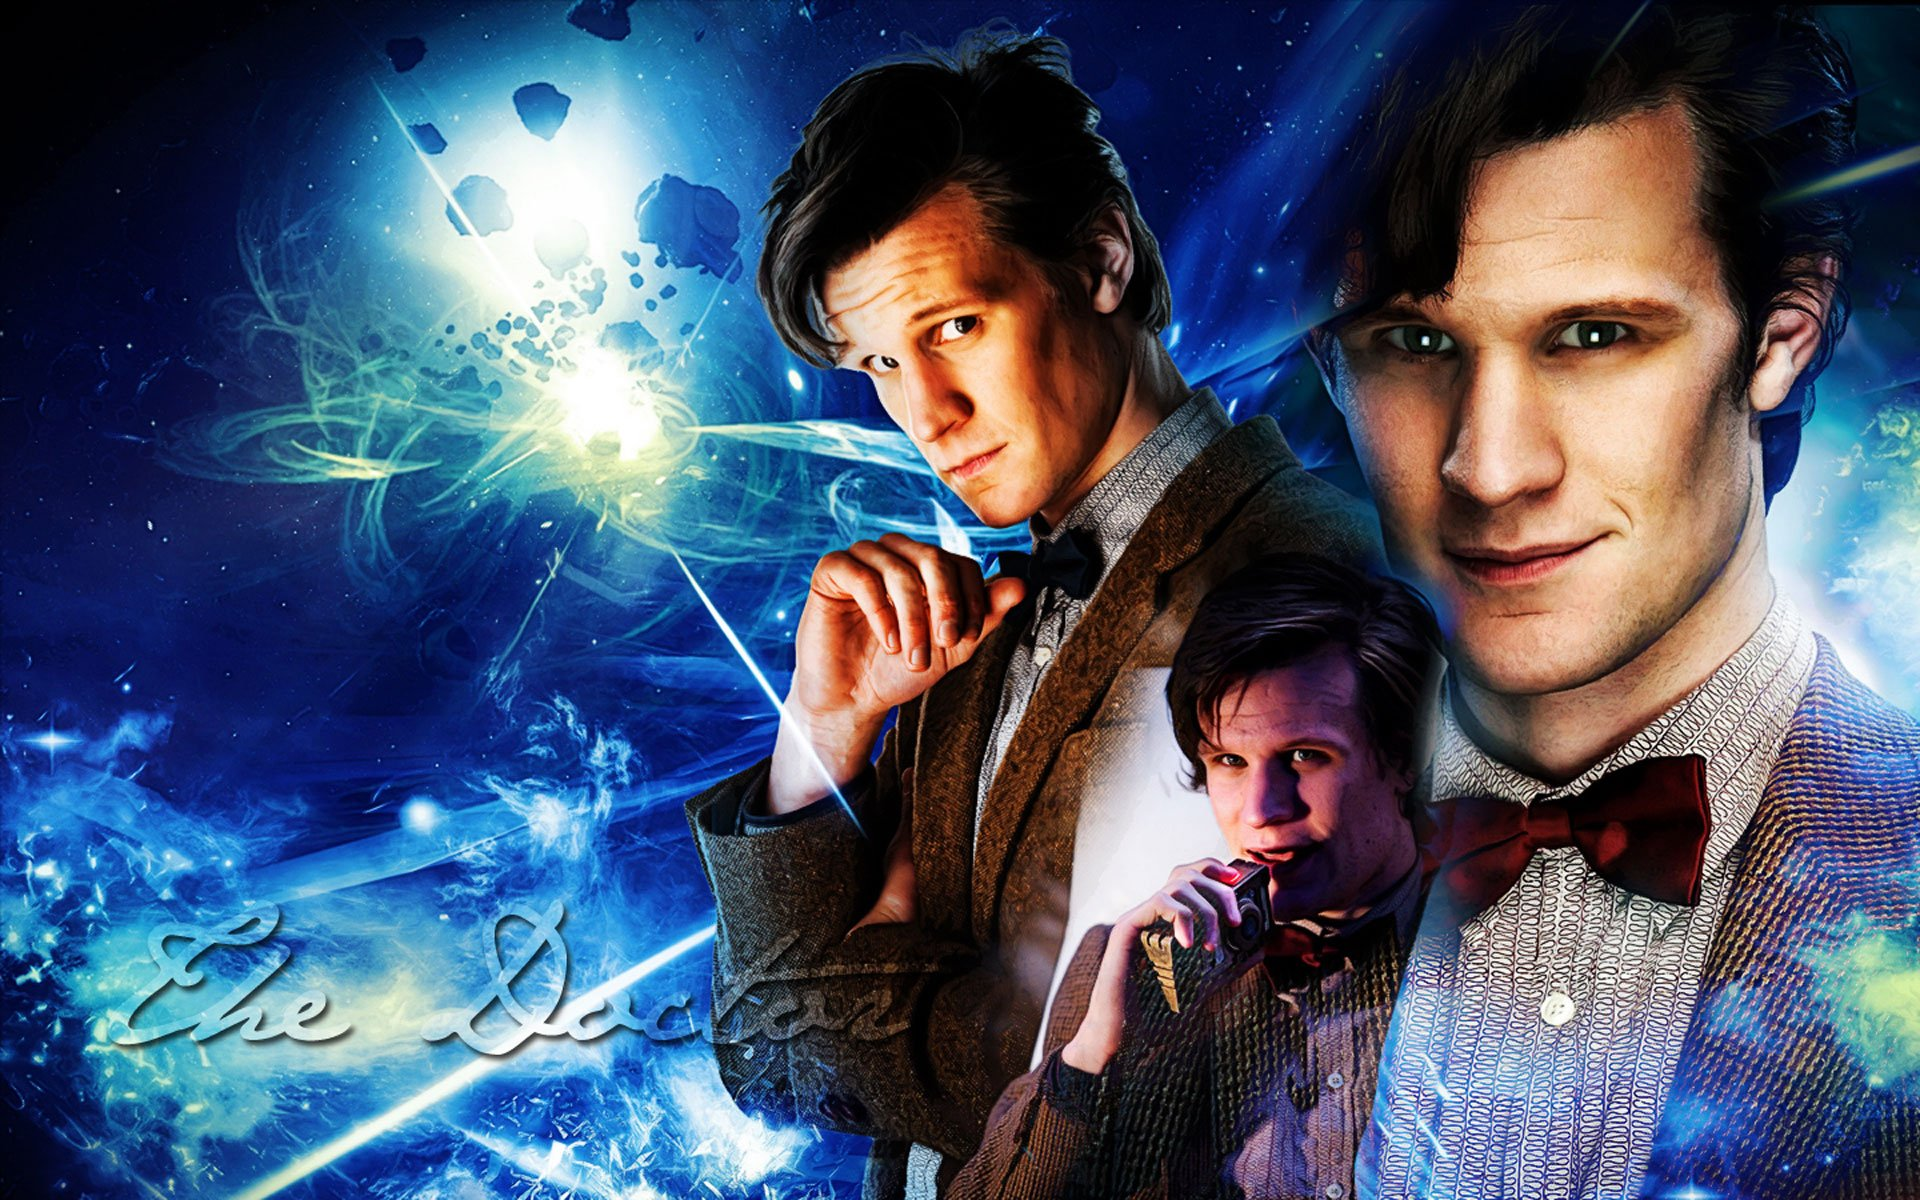 Doctor Who Wallpaper download Wallpapers Backgrounds Images 1920x1200